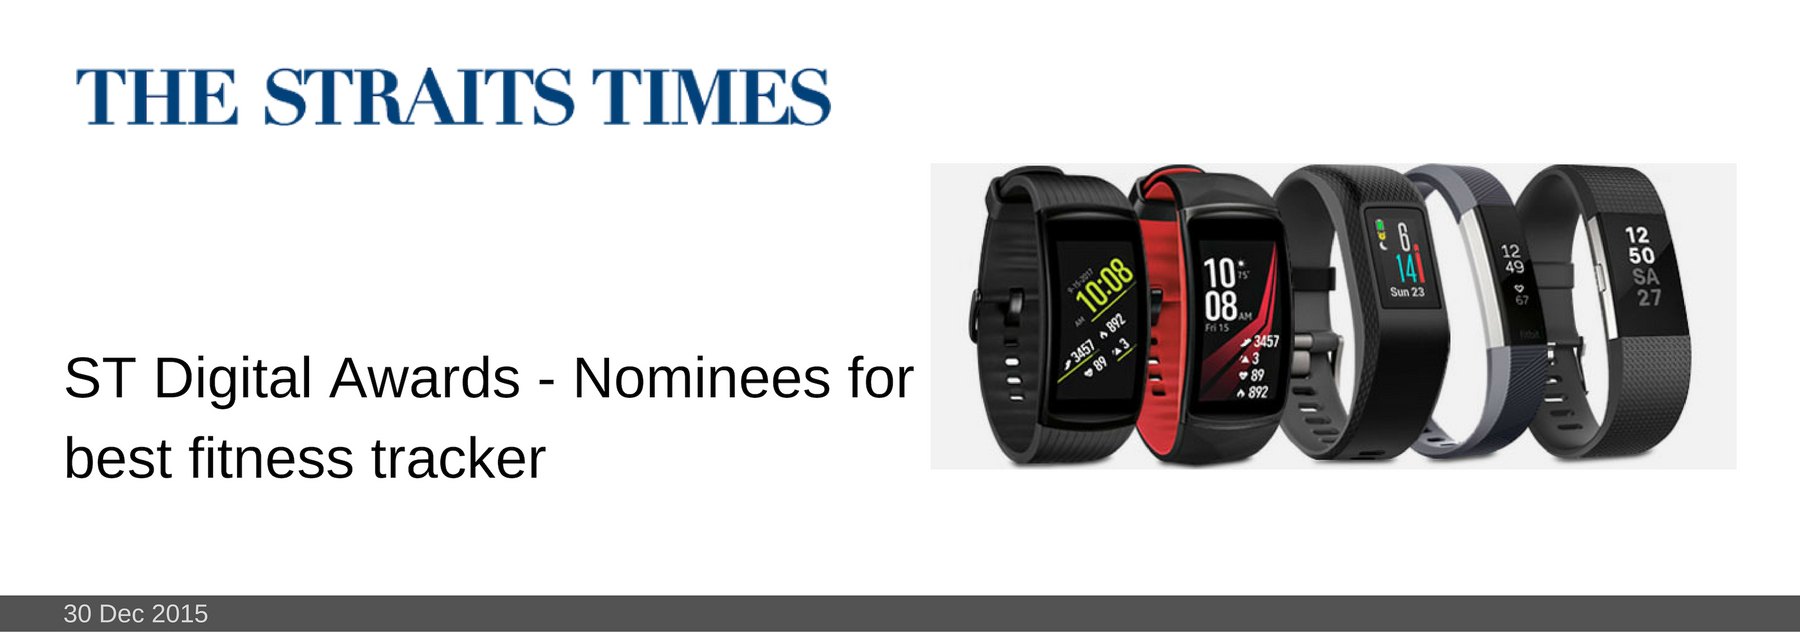 30 DEC 2015: ST Digital Awards - Nominees for best fitness tracker